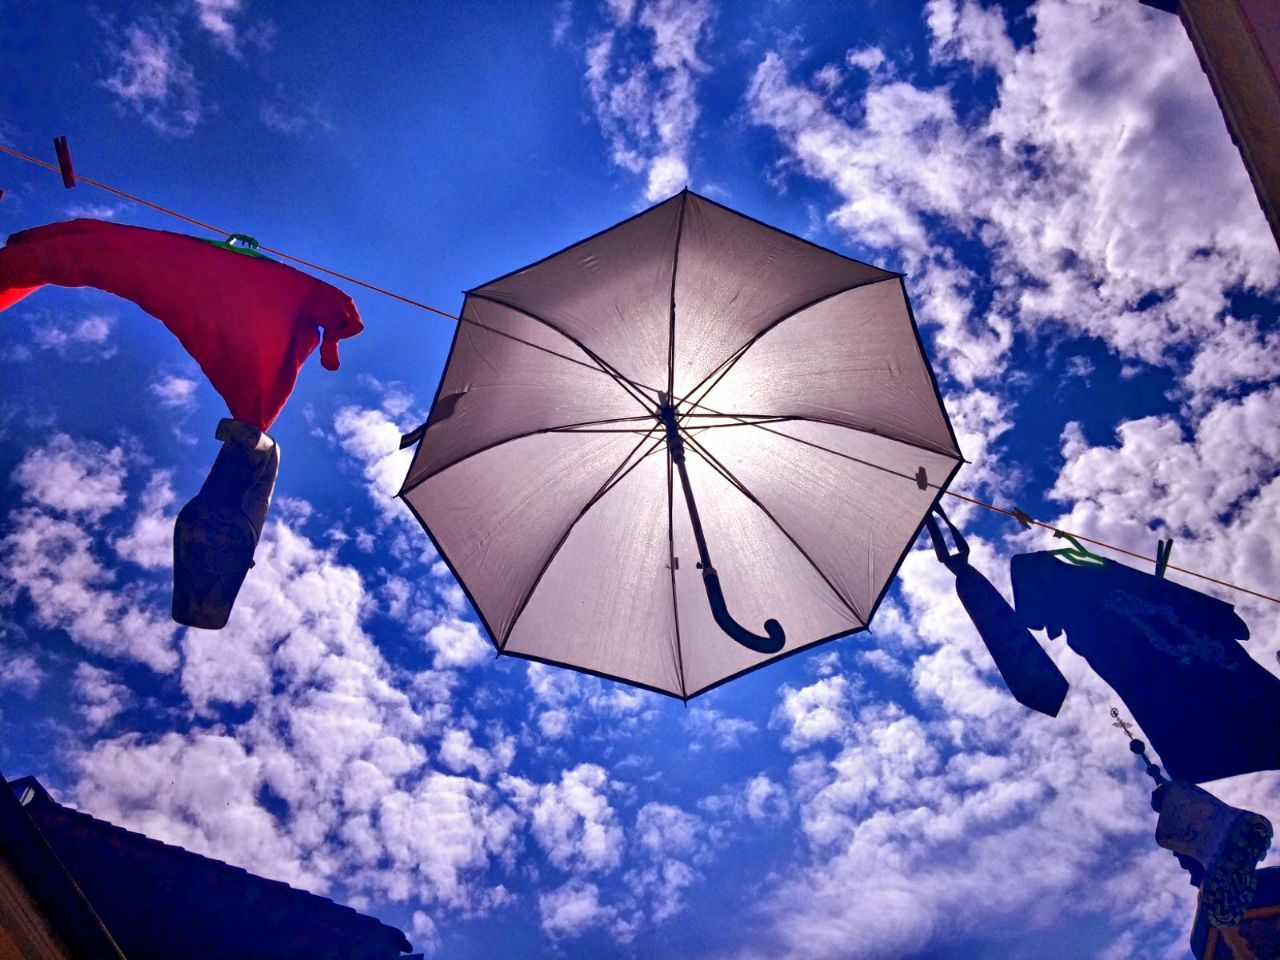 2016-11-06-14-25-14 Blue Clothes Clothes Line Cloud - Sky Day Low Angle View No People Outdoors Shoes Sky Sun Sunlight Umbrella